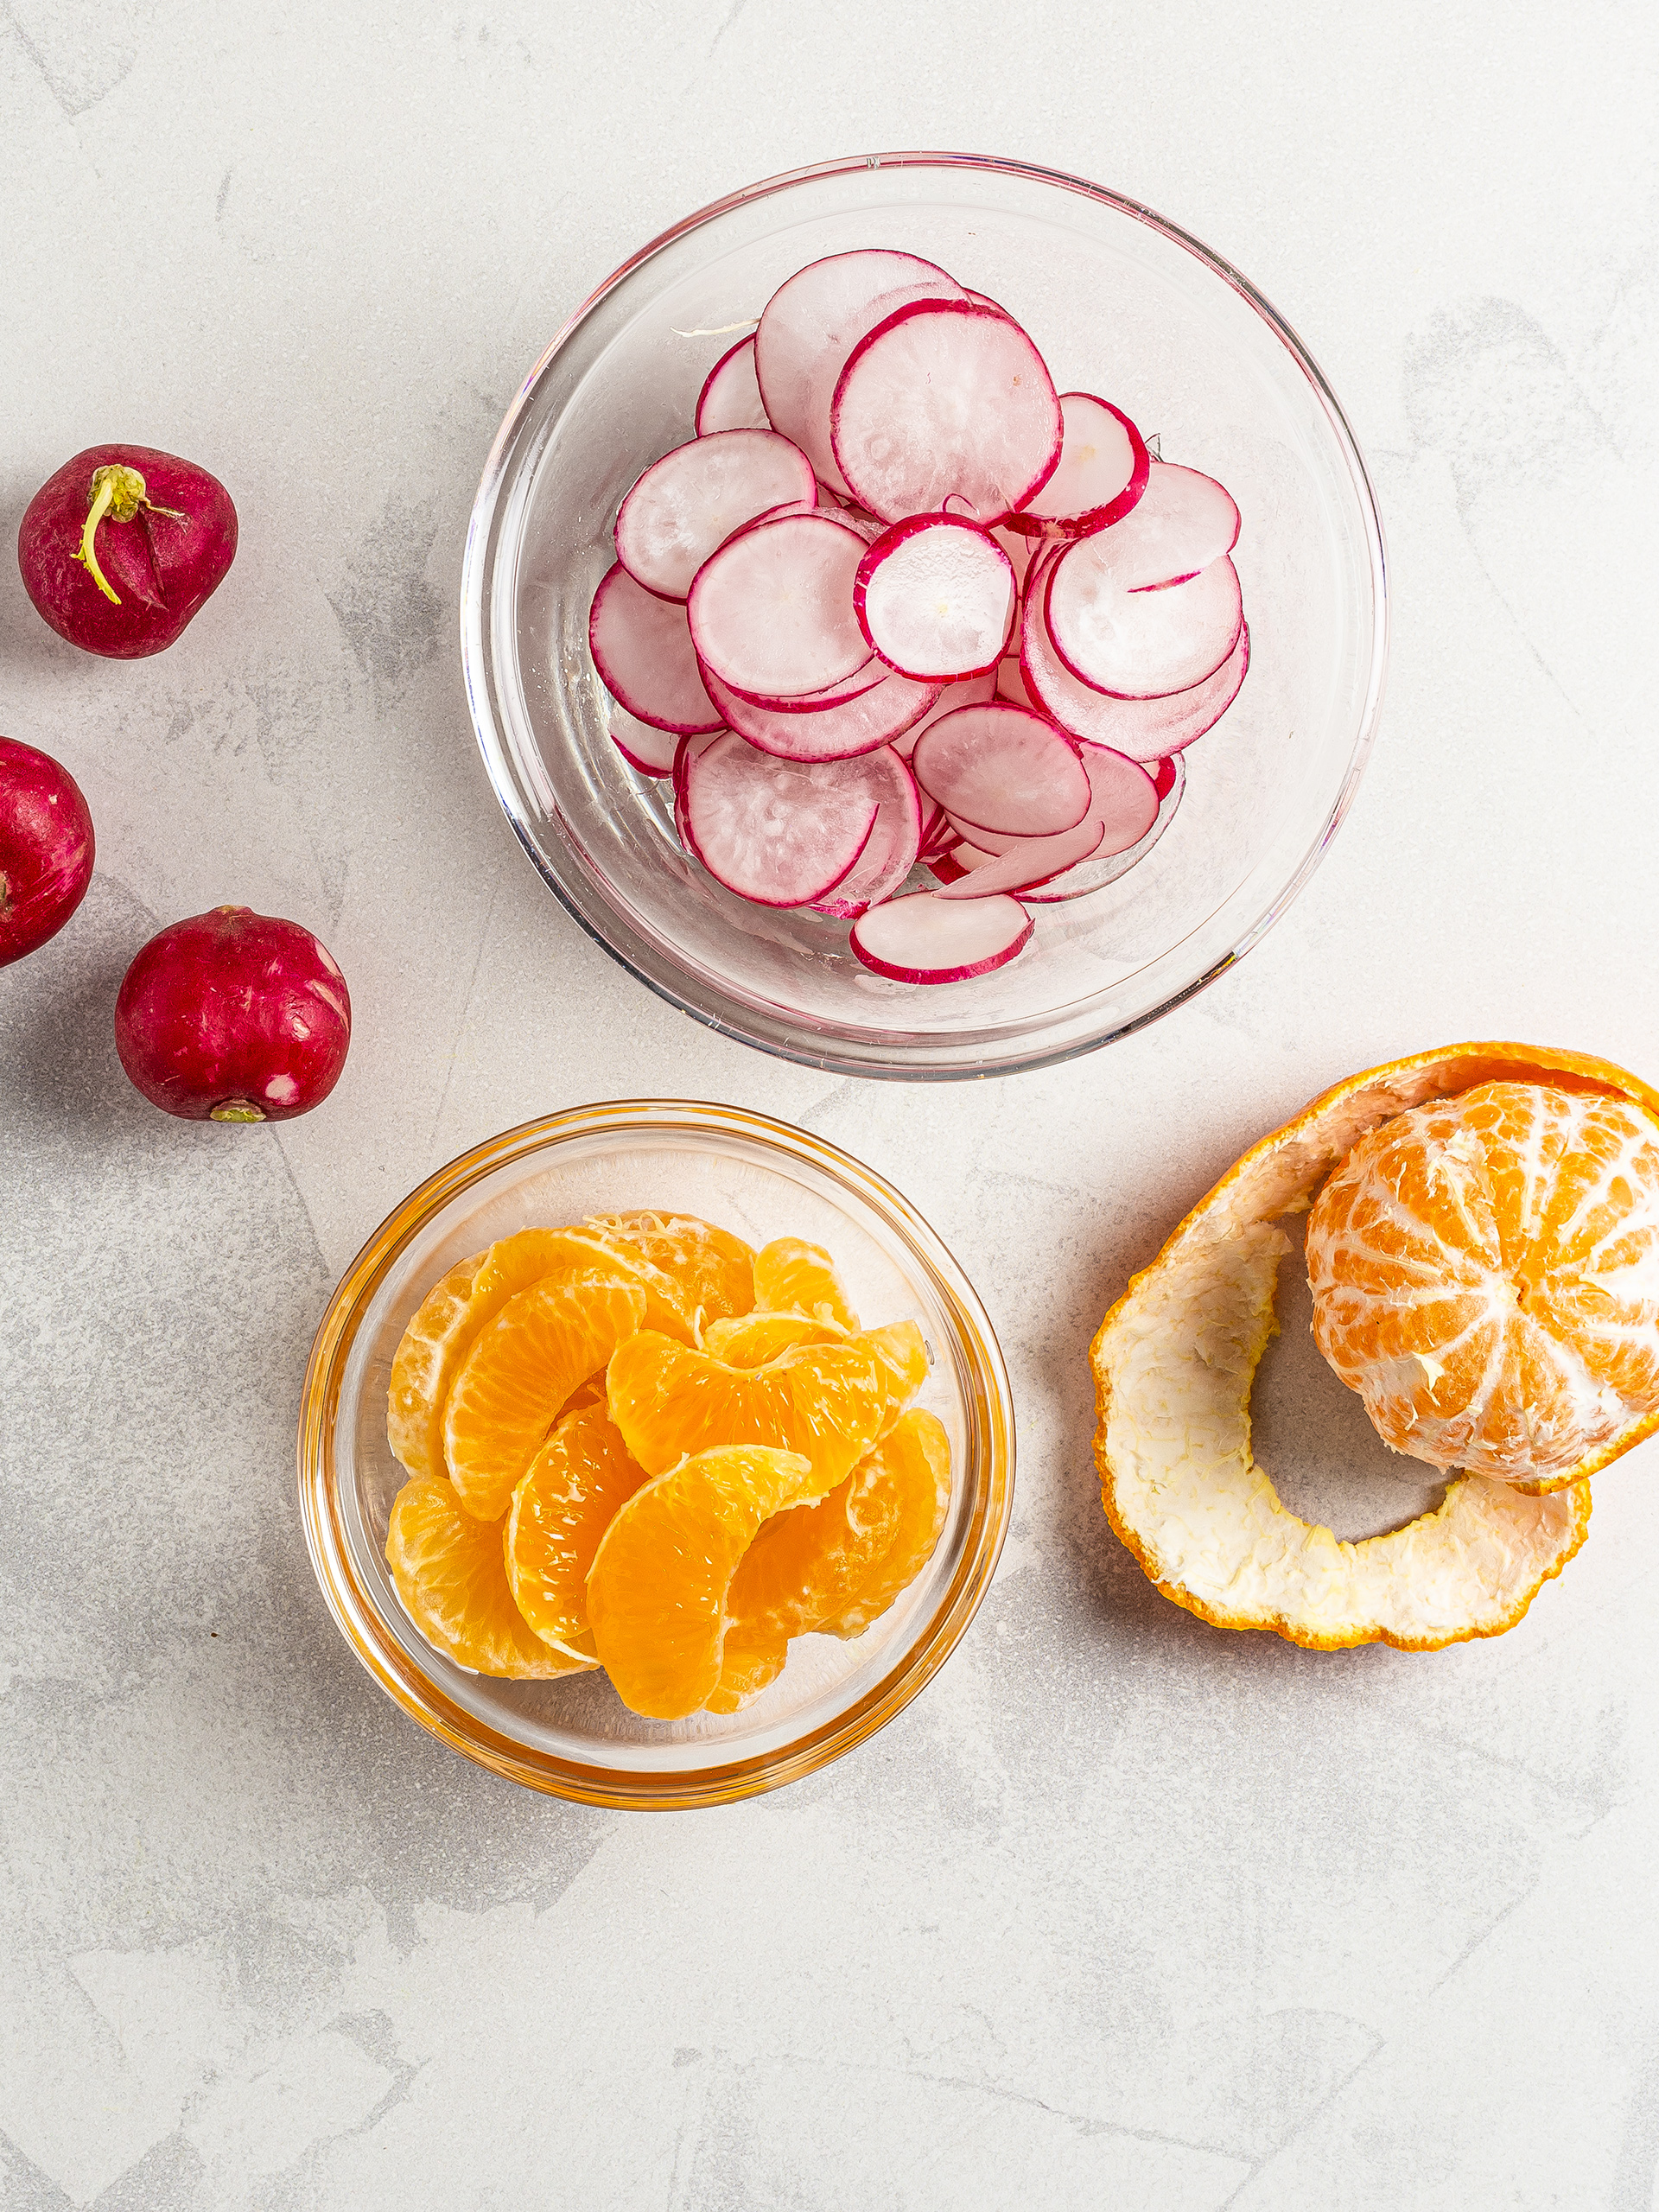 Sliced radishes and tangerines